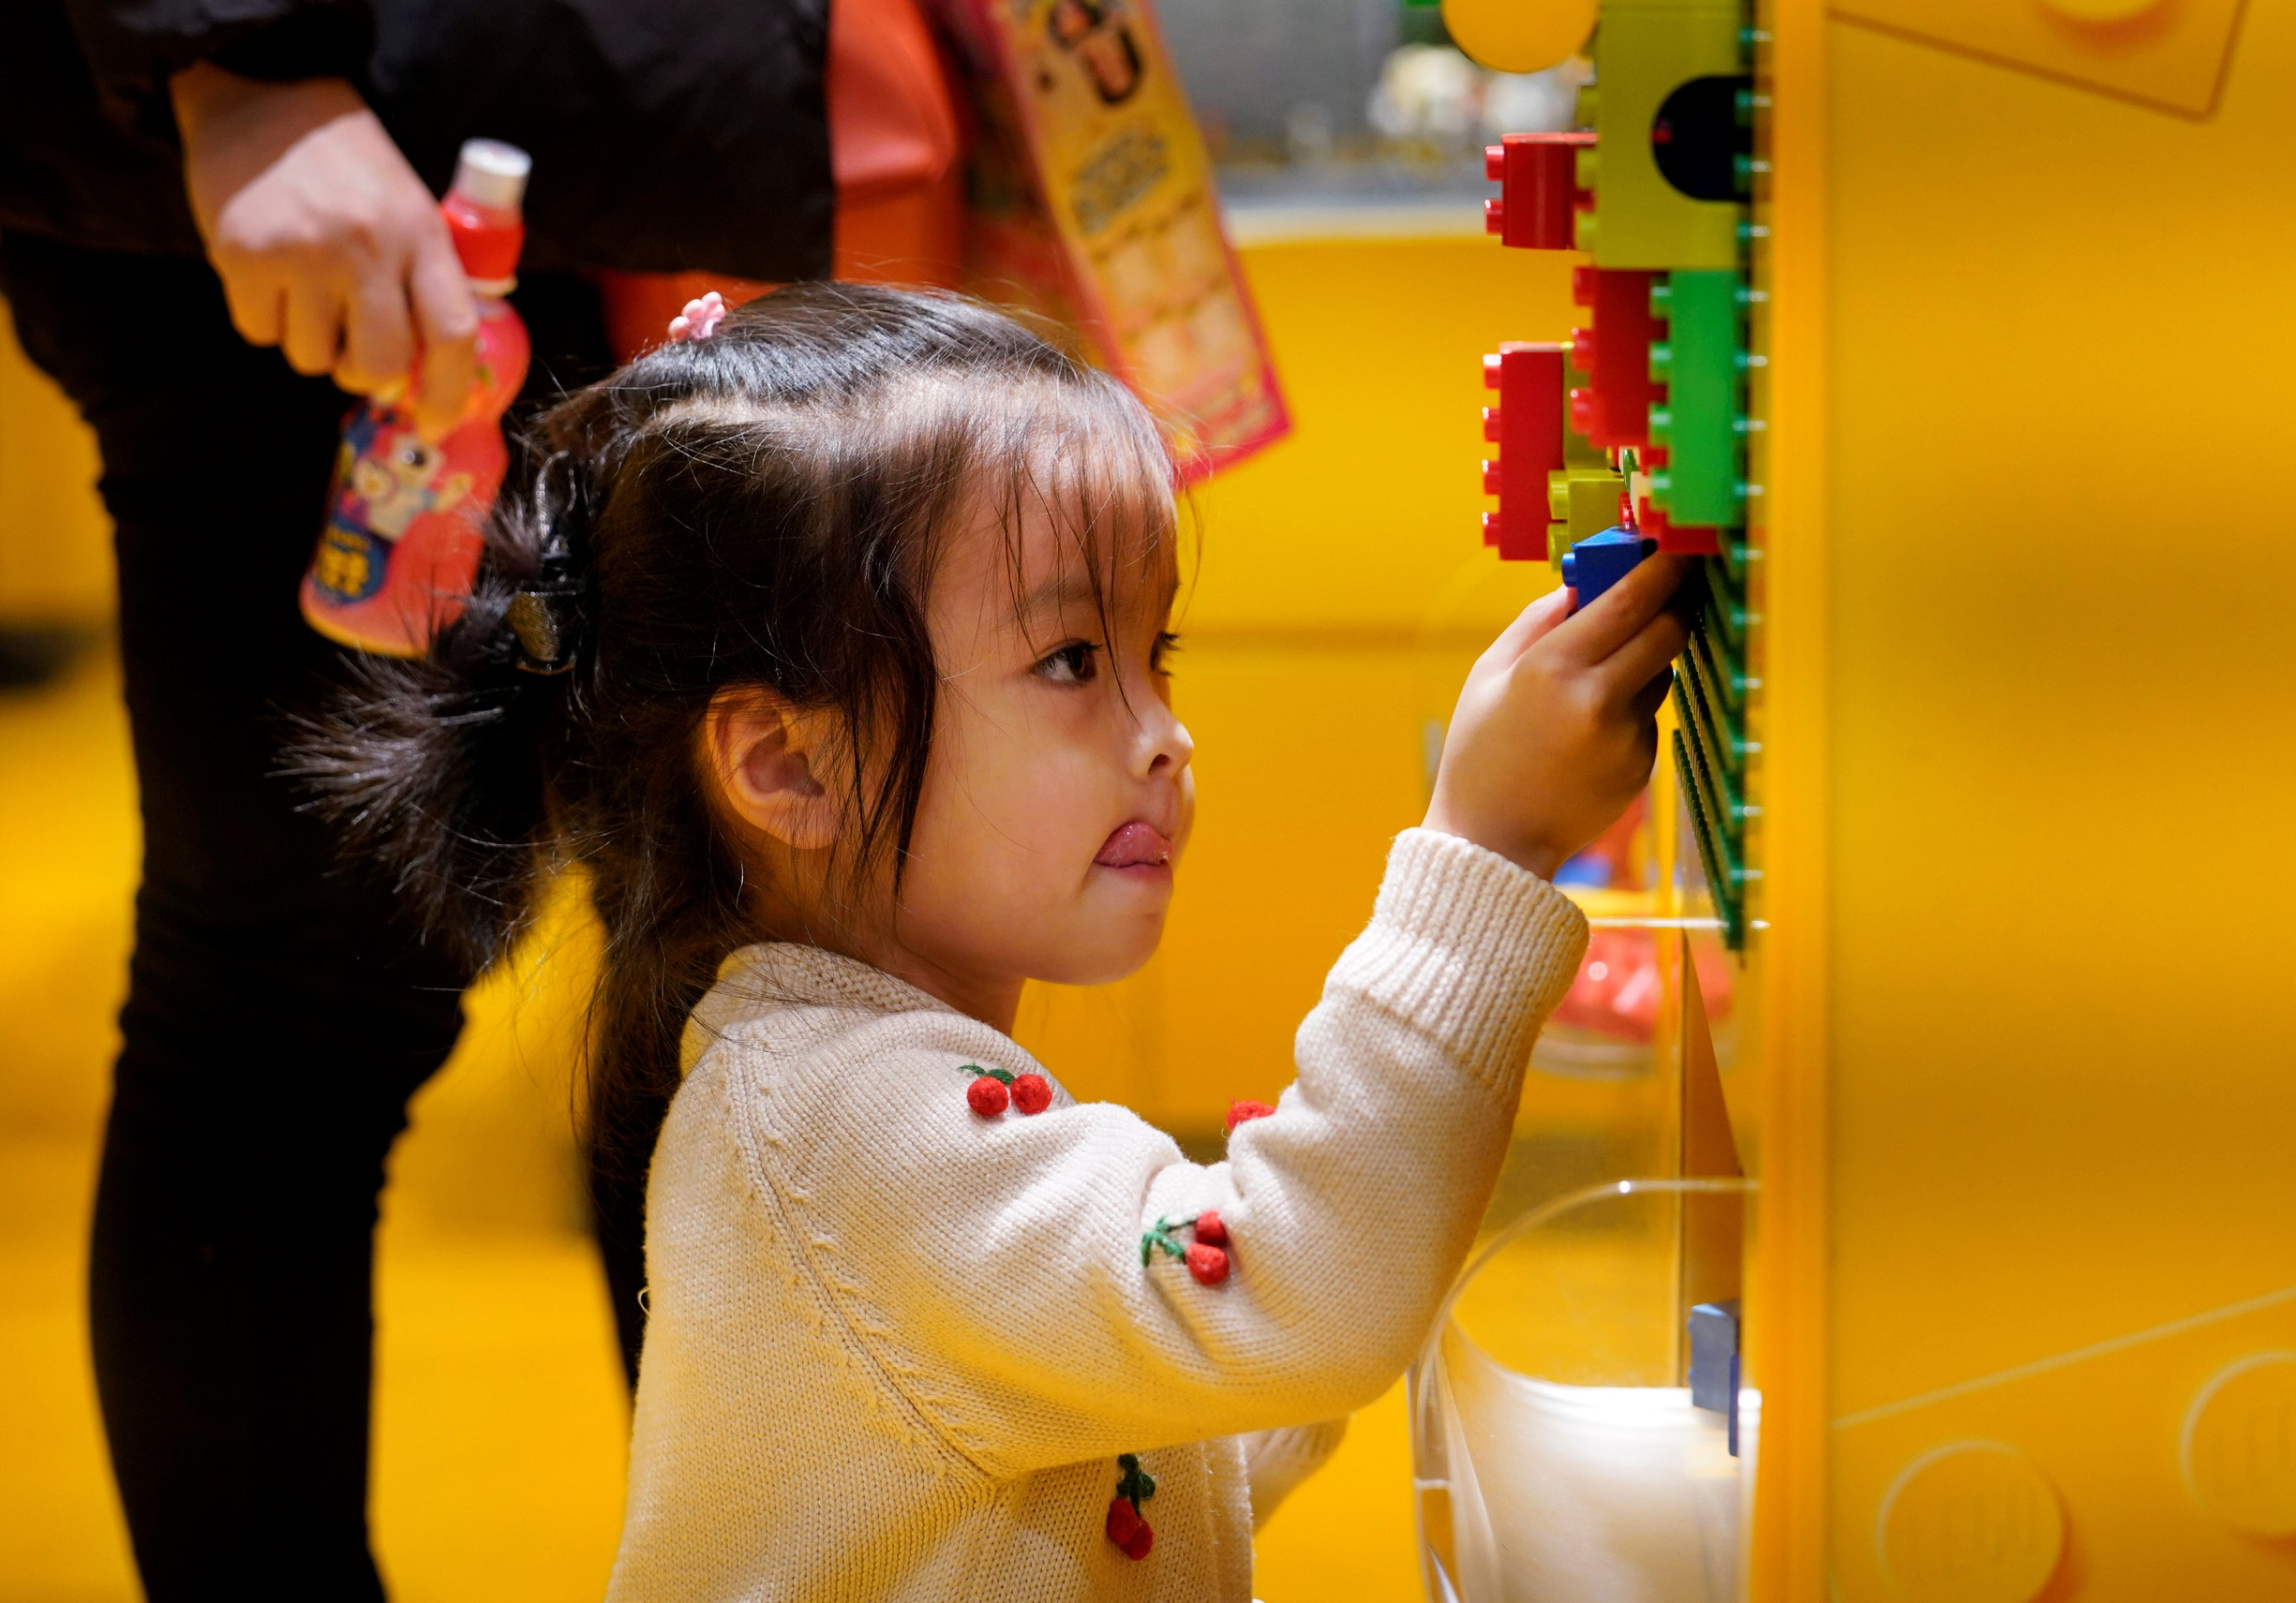 A girl plays at a Lego store in Beijing, China January 13, 2018. Picture taken January 13, 2018. REUTERS/Jason Lee - RC1E40F51250